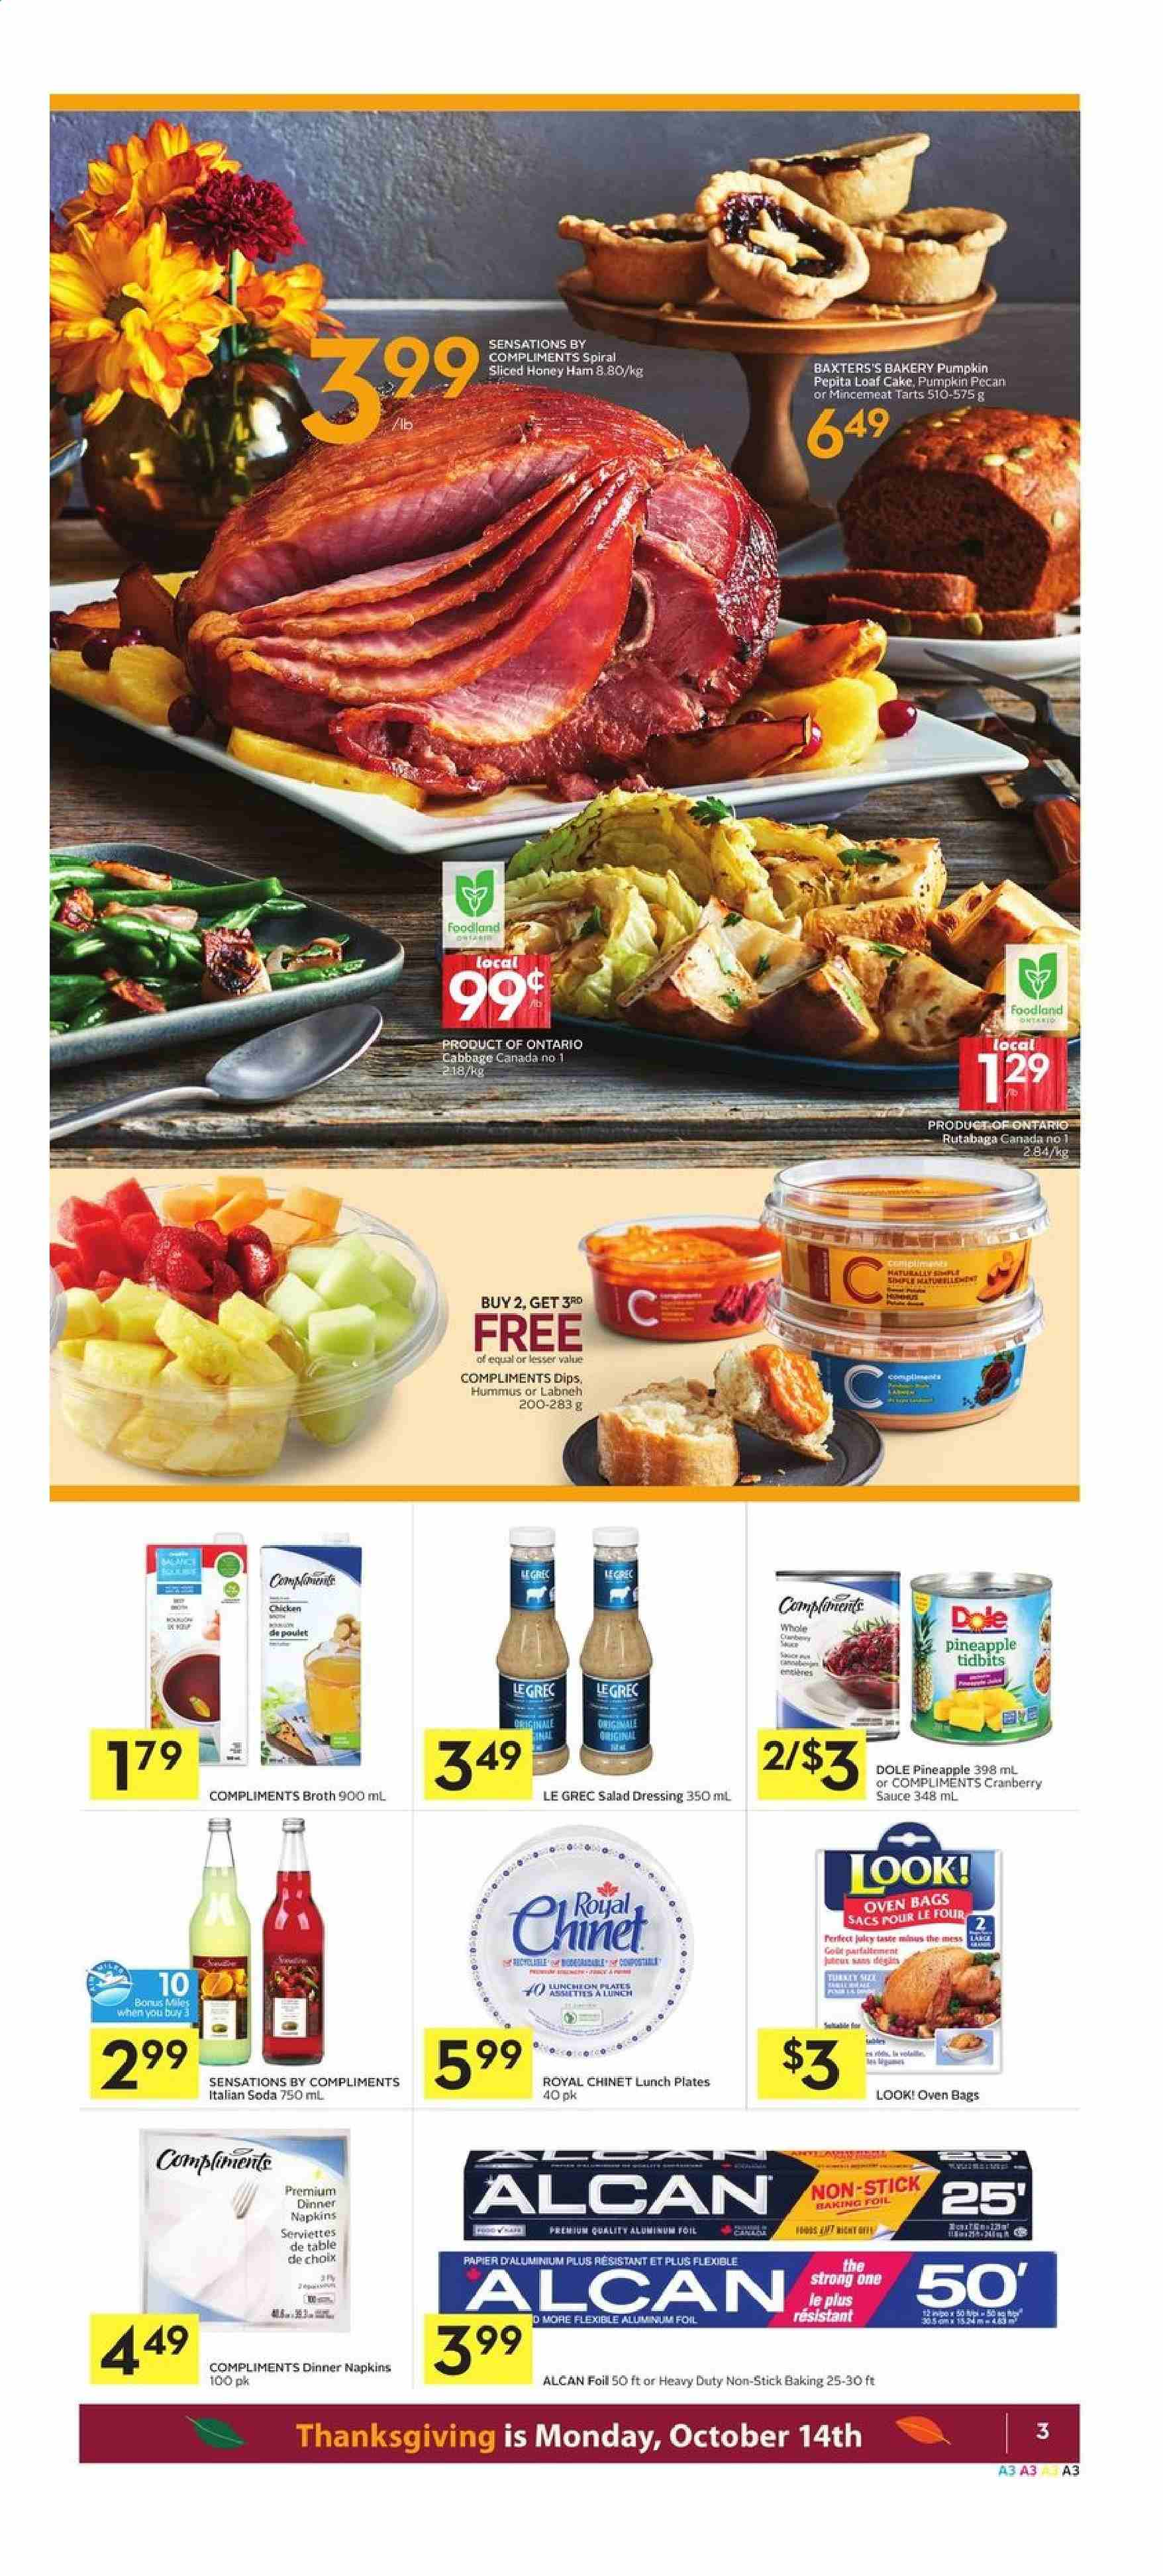 Foodland Flyer  - October 10, 2019 - October 16, 2019. Page 3.